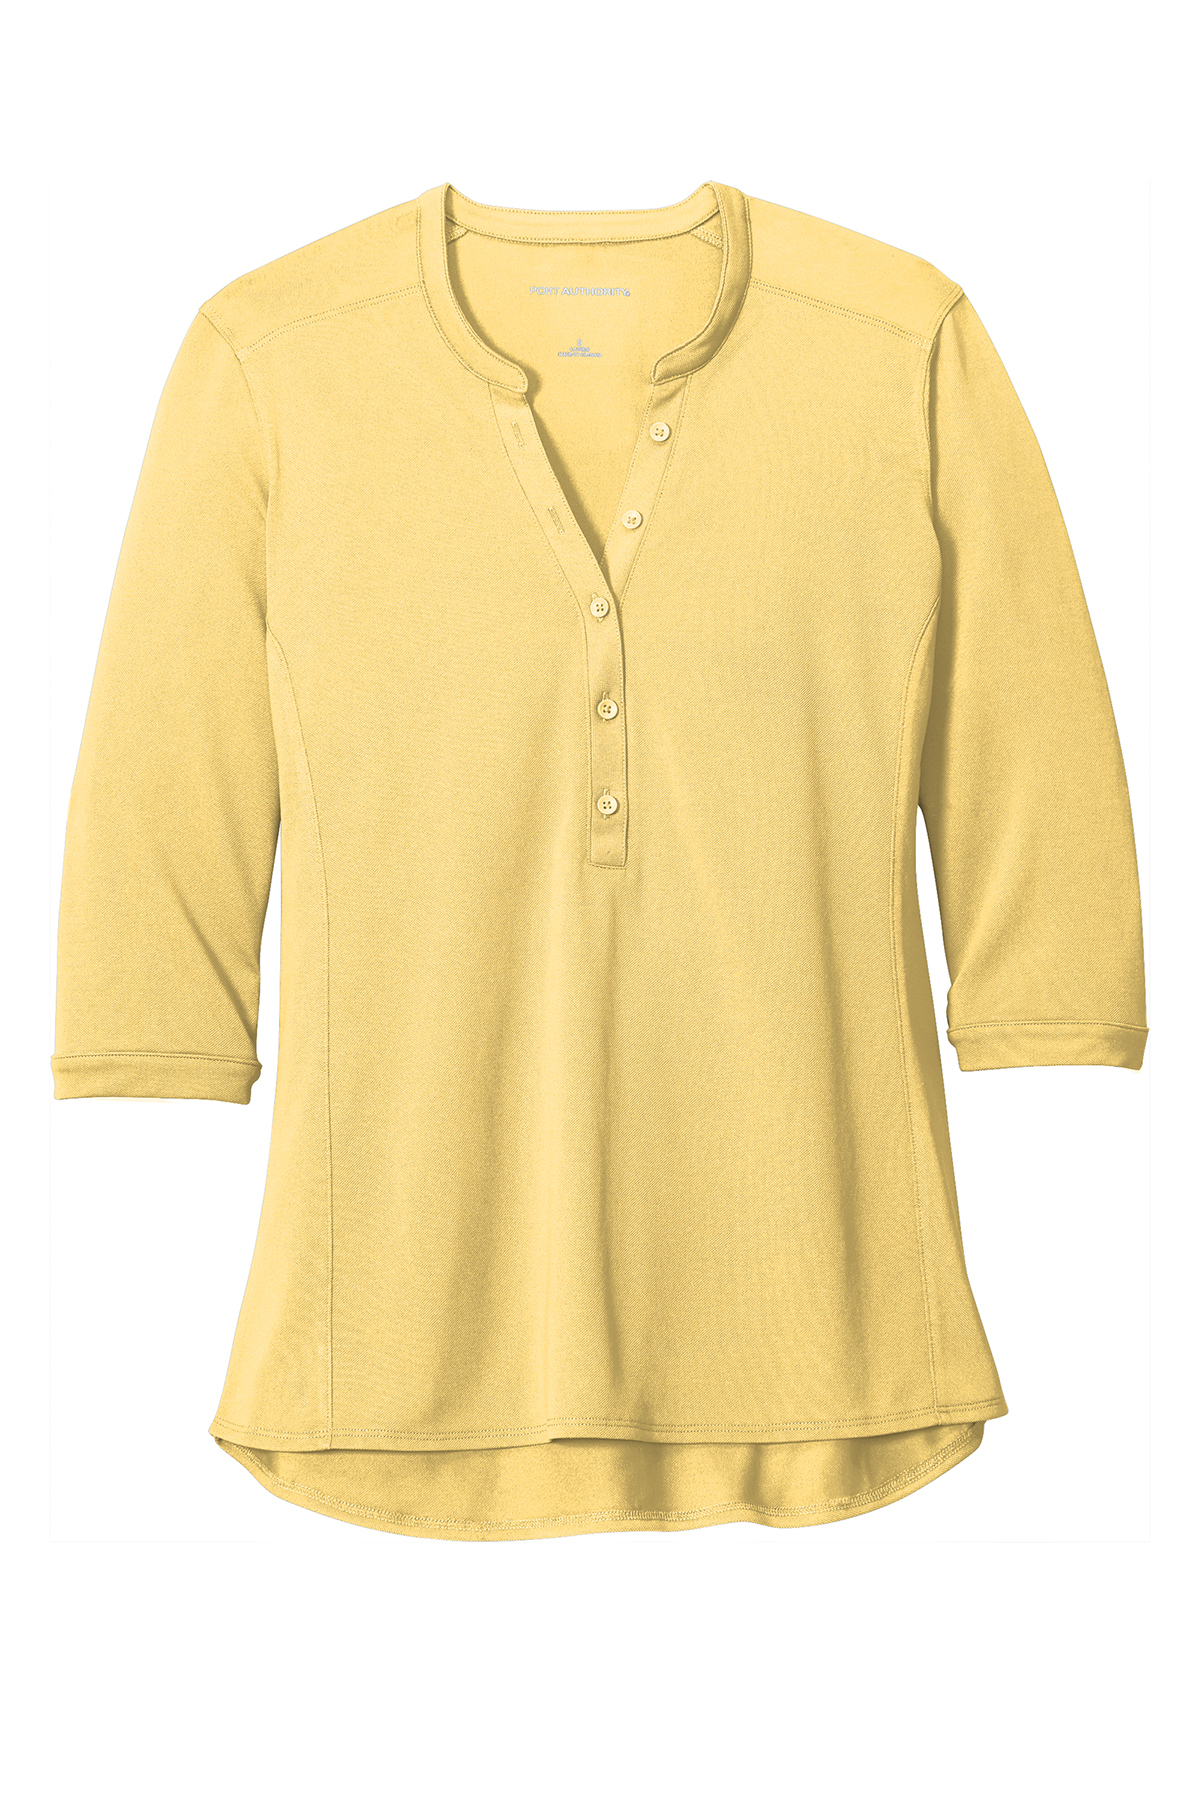 Port Authority LK750 - Ladies UV Choice Pique Henley